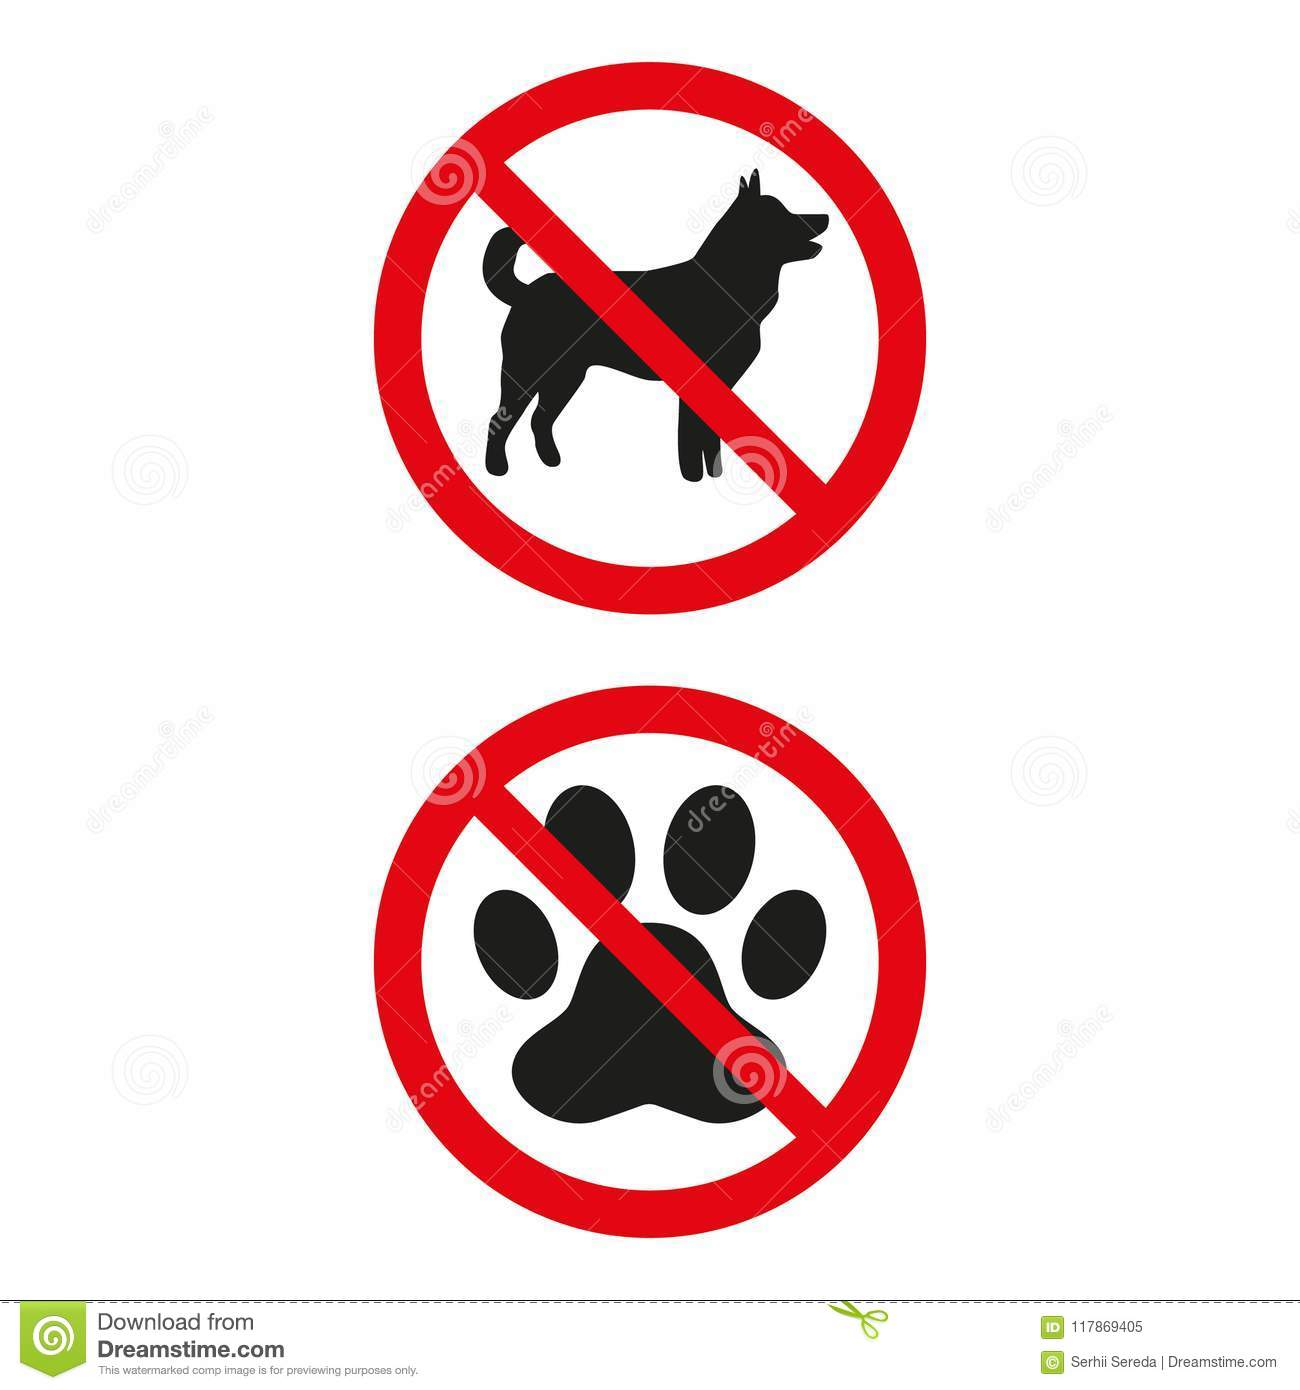 No dogs sign on white background.